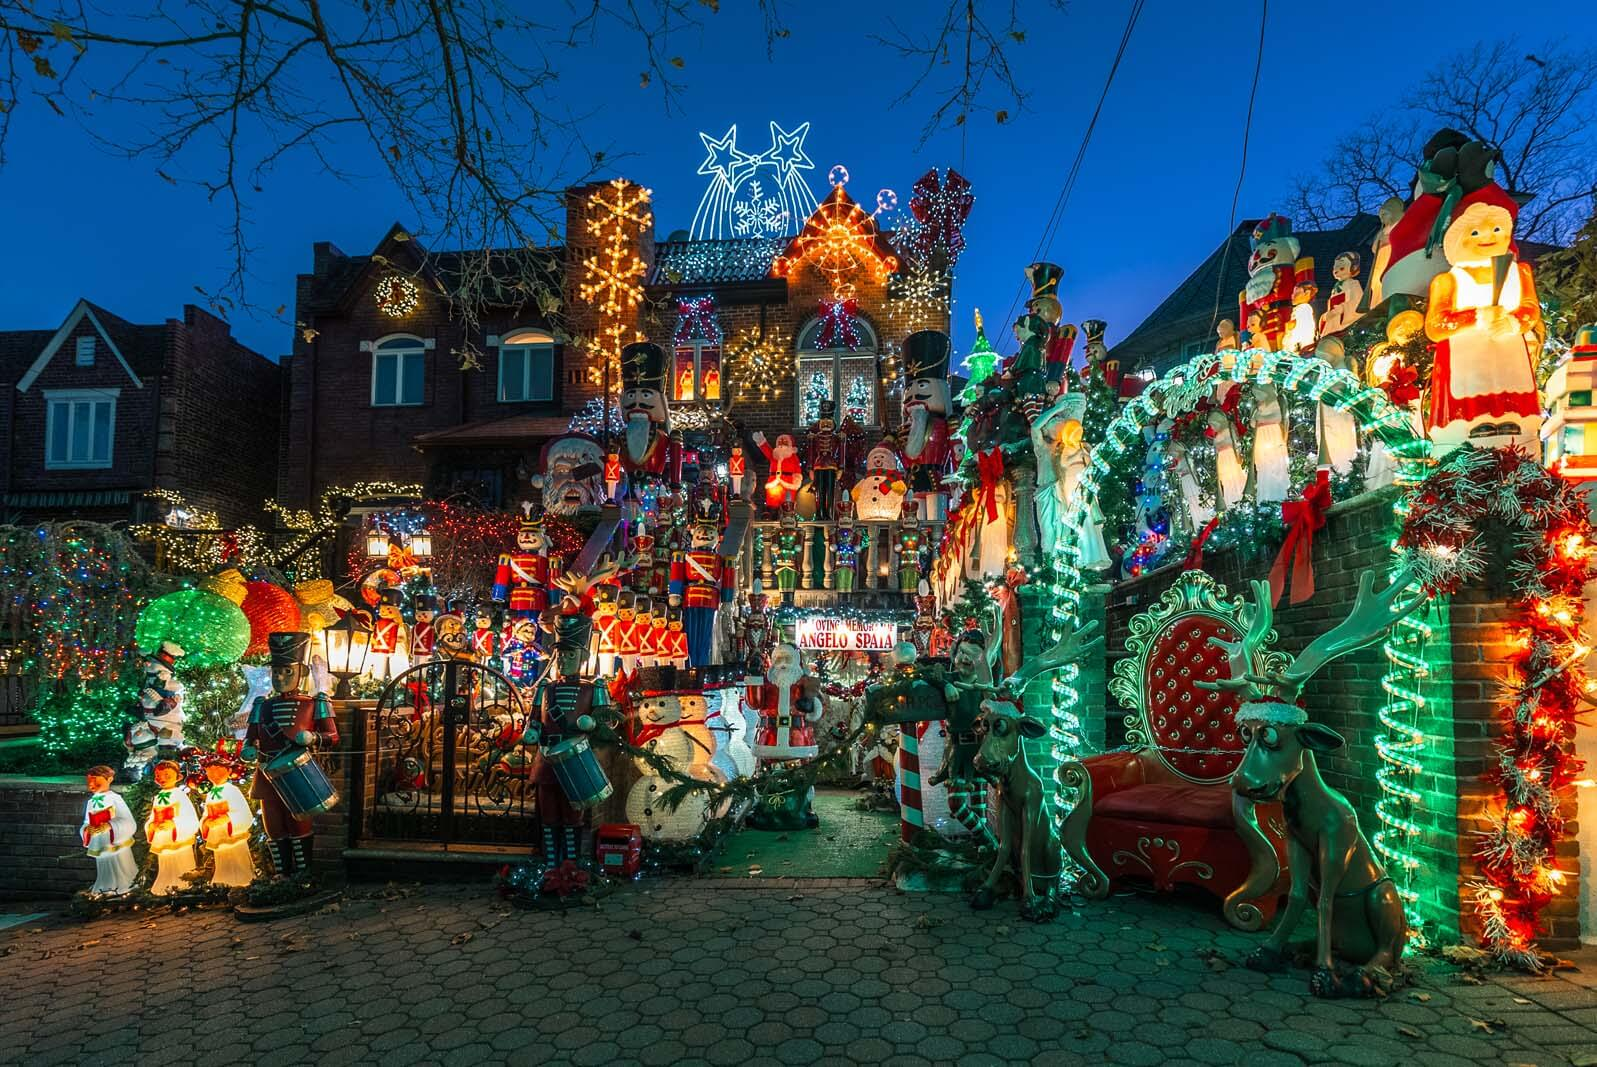 Lucy Spata house at christmas in dyker heights in brooklyn